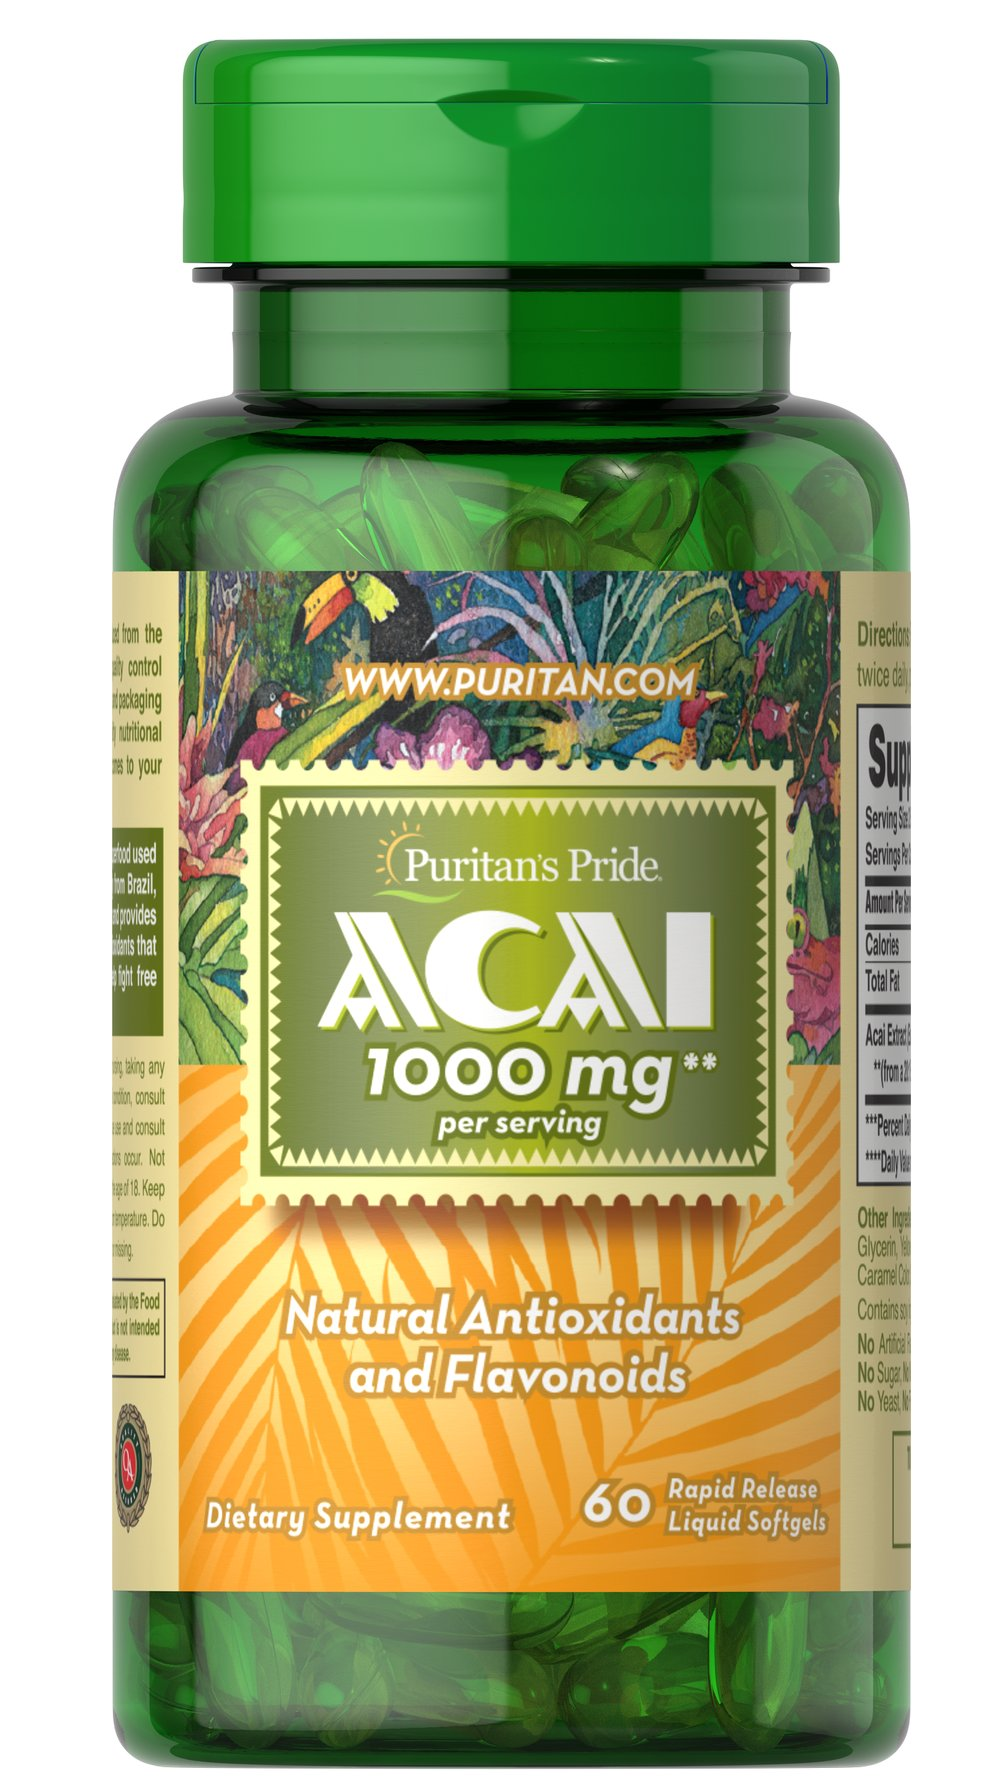 Acai 1000 mg Rapid-release liquid softgels. <p></p>Contains 1000 mg Acai per serving (two softgels).<p></p>Contains natural flavonoids and antioxidants<p></p>Supports overall well-being**<p></p>Helps enrich the vitality of your body and soul**<p></p> 60 Softgels 1000 mg $10.29